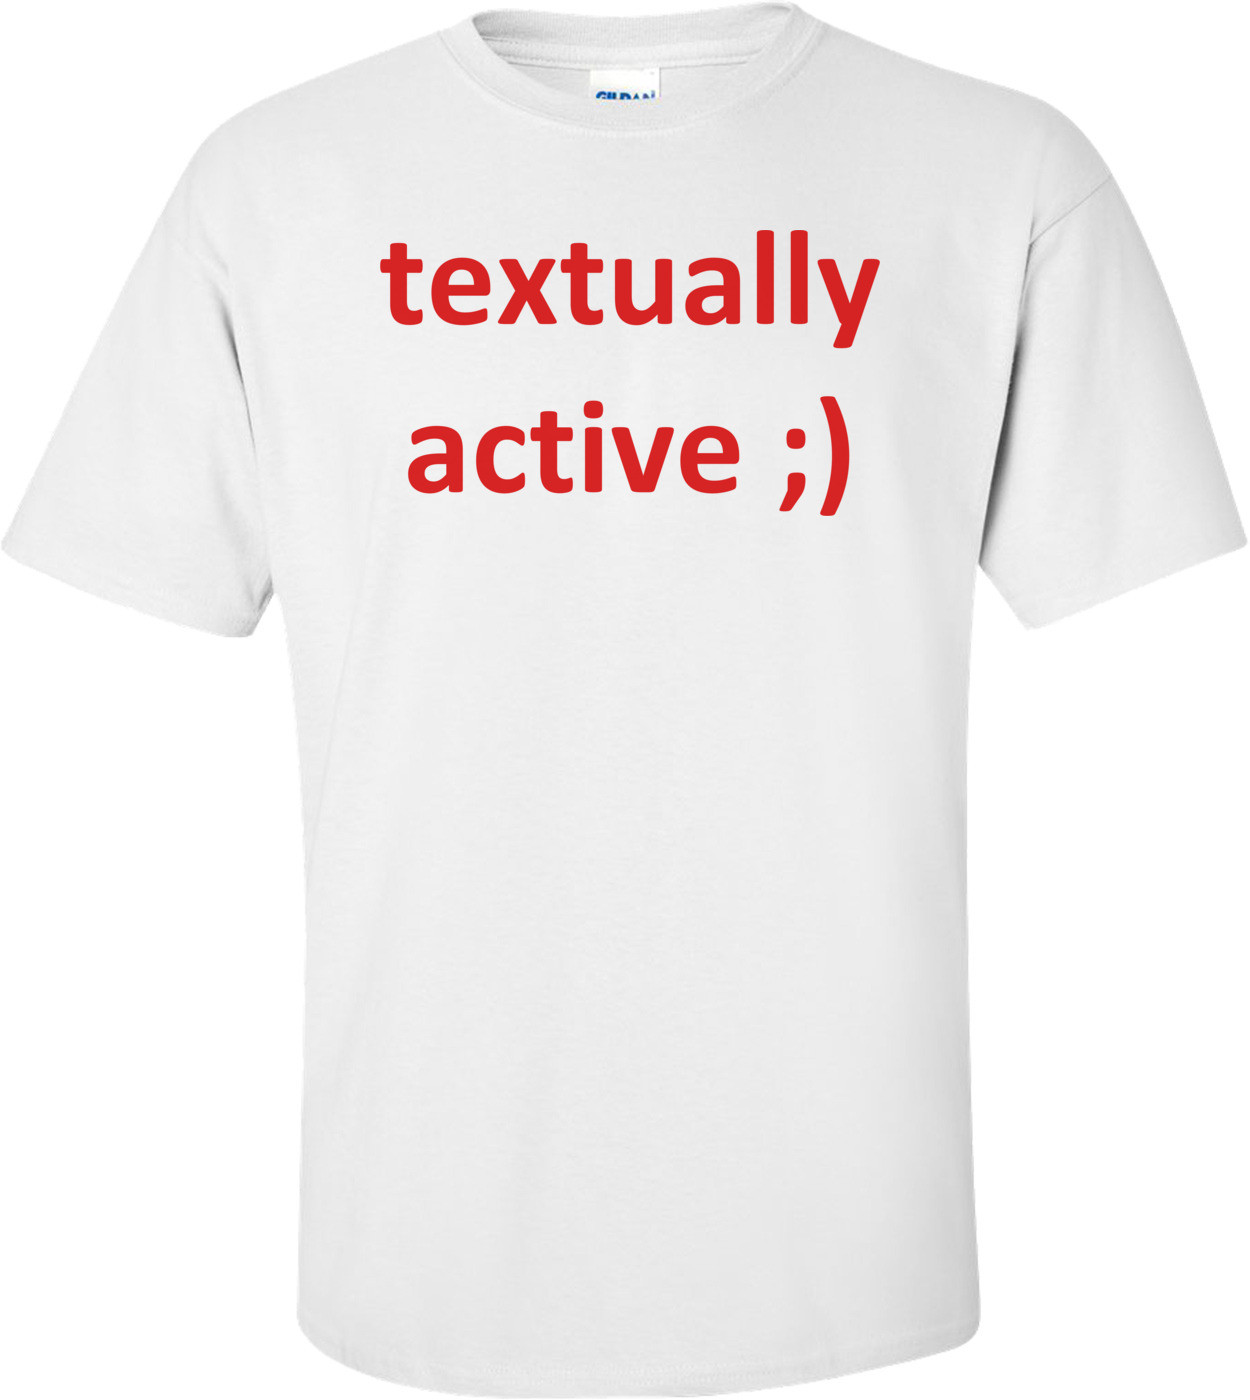 textually active ;) Shirt